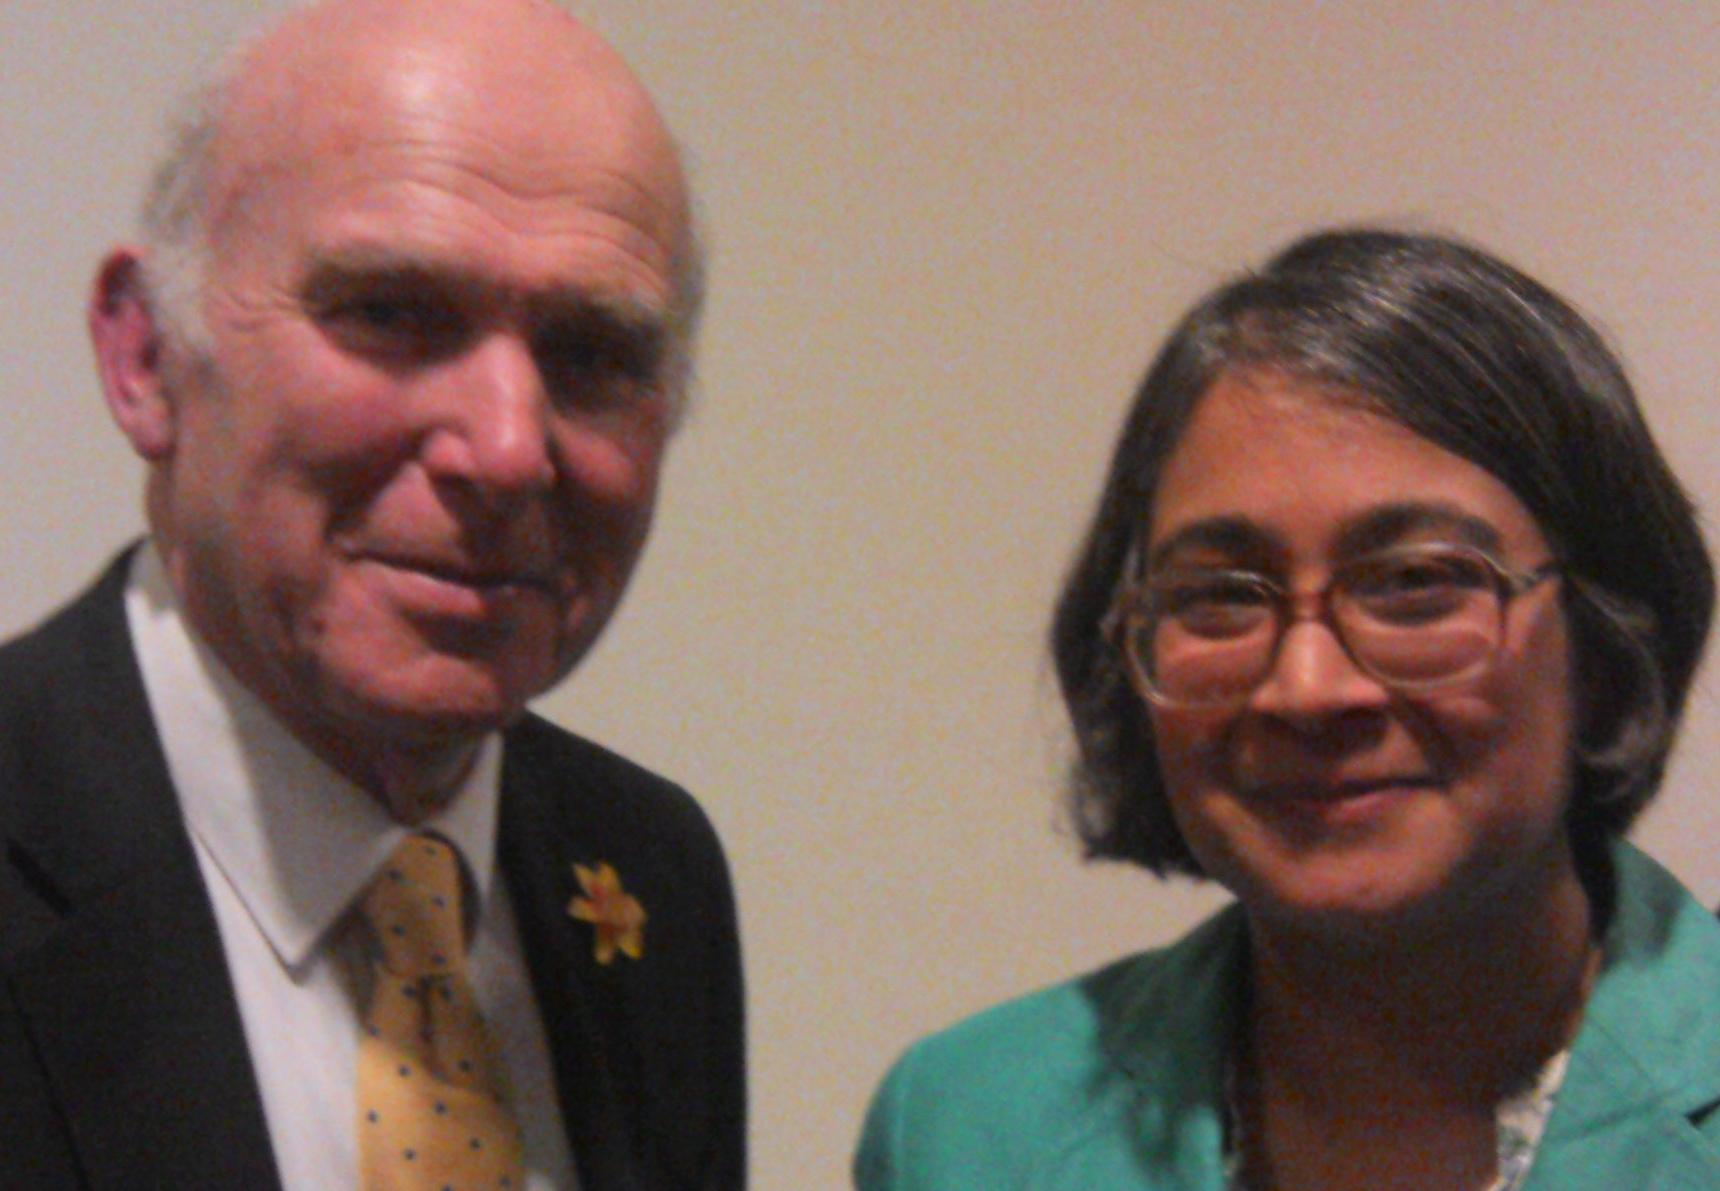 Liberal Democrat Business Secretary Vince Cable MP and Marisha Ray